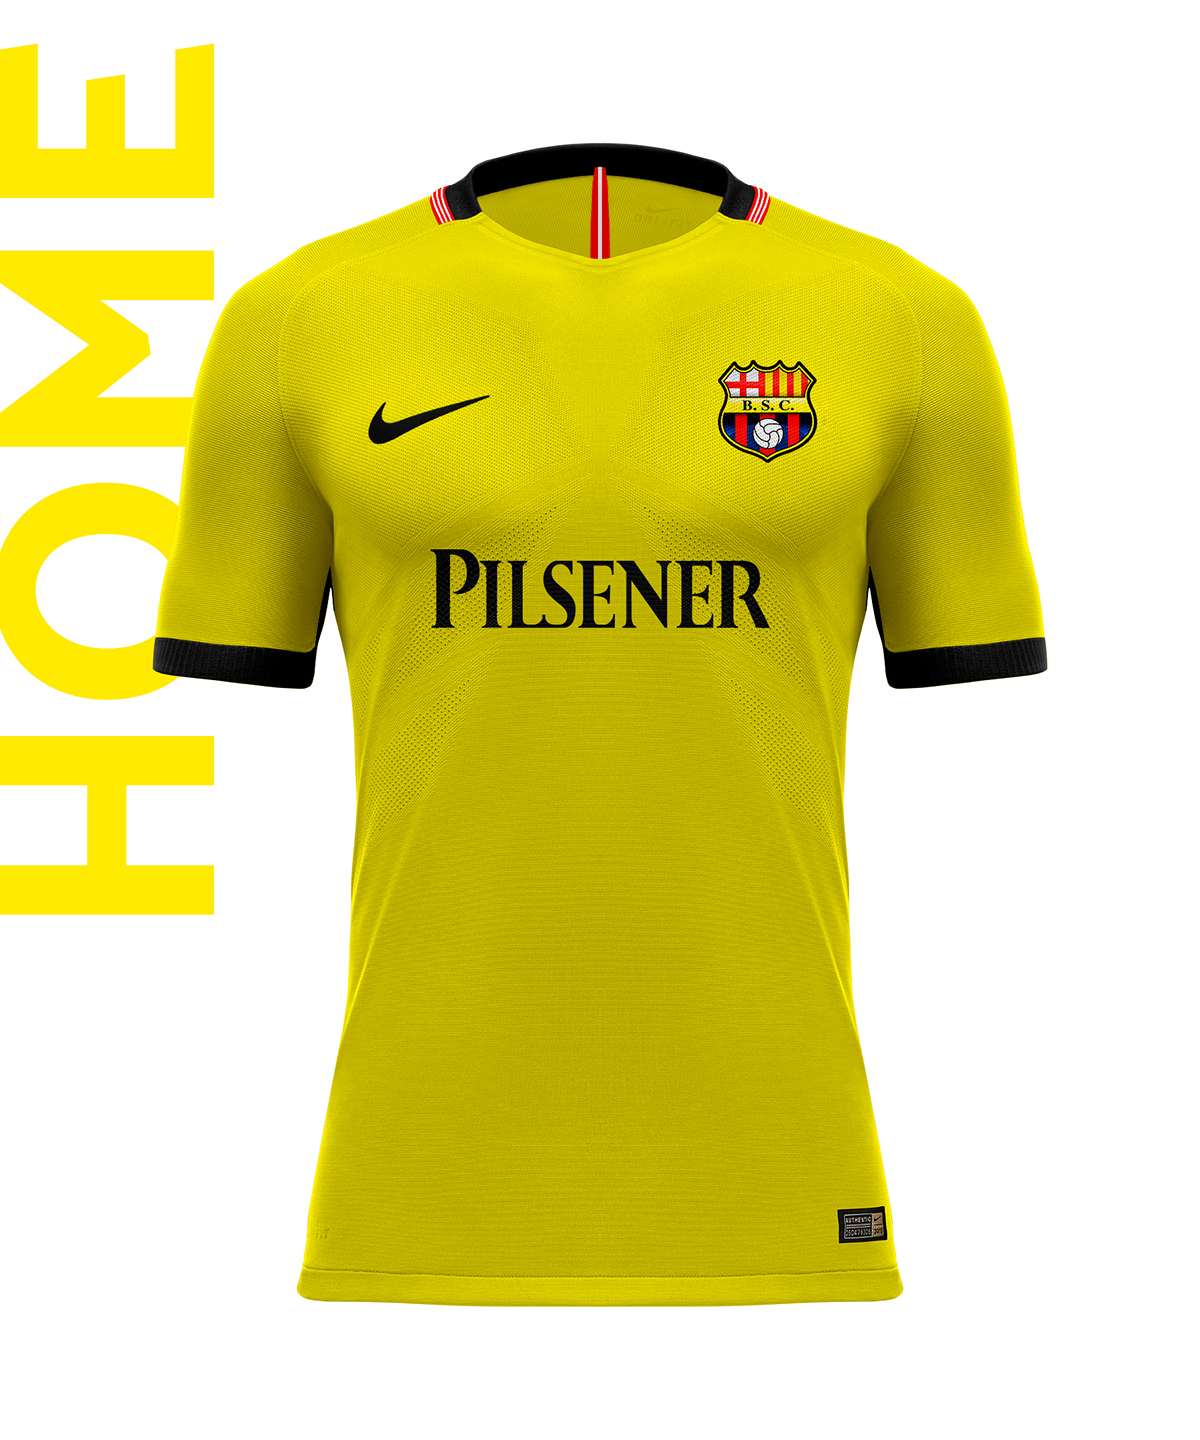 finest selection 8bfbf 9ab9c Barcelona SC (SHIRT CONCEPT) on Student Show